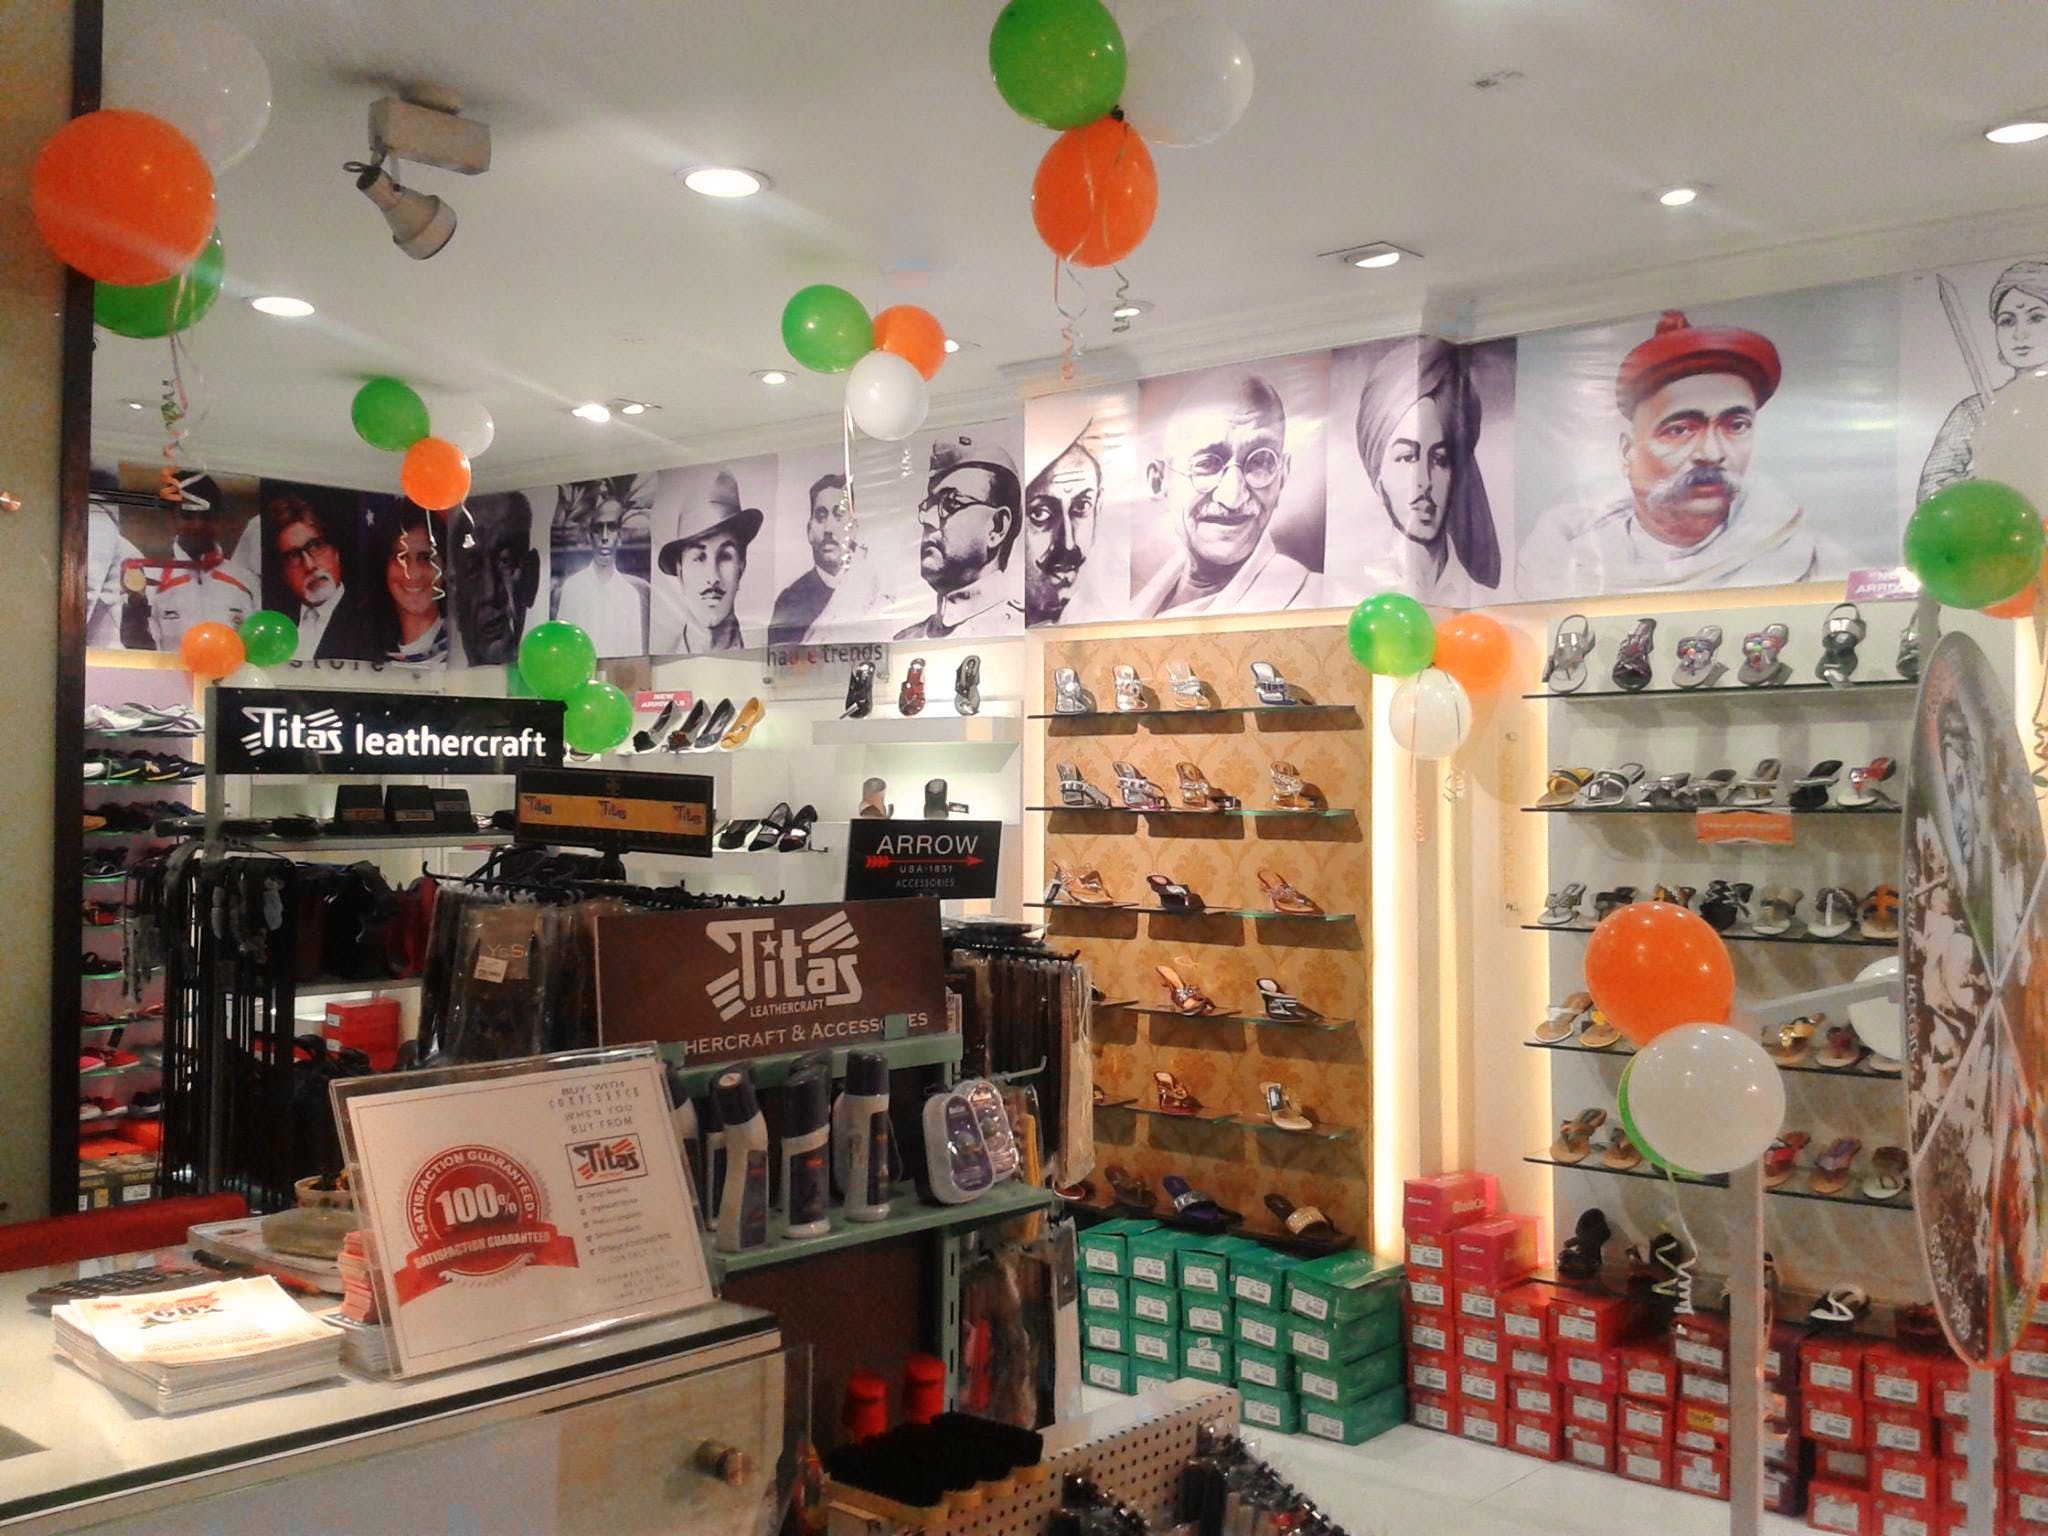 Product,Building,Retail,Interior design,Outlet store,Convenience store